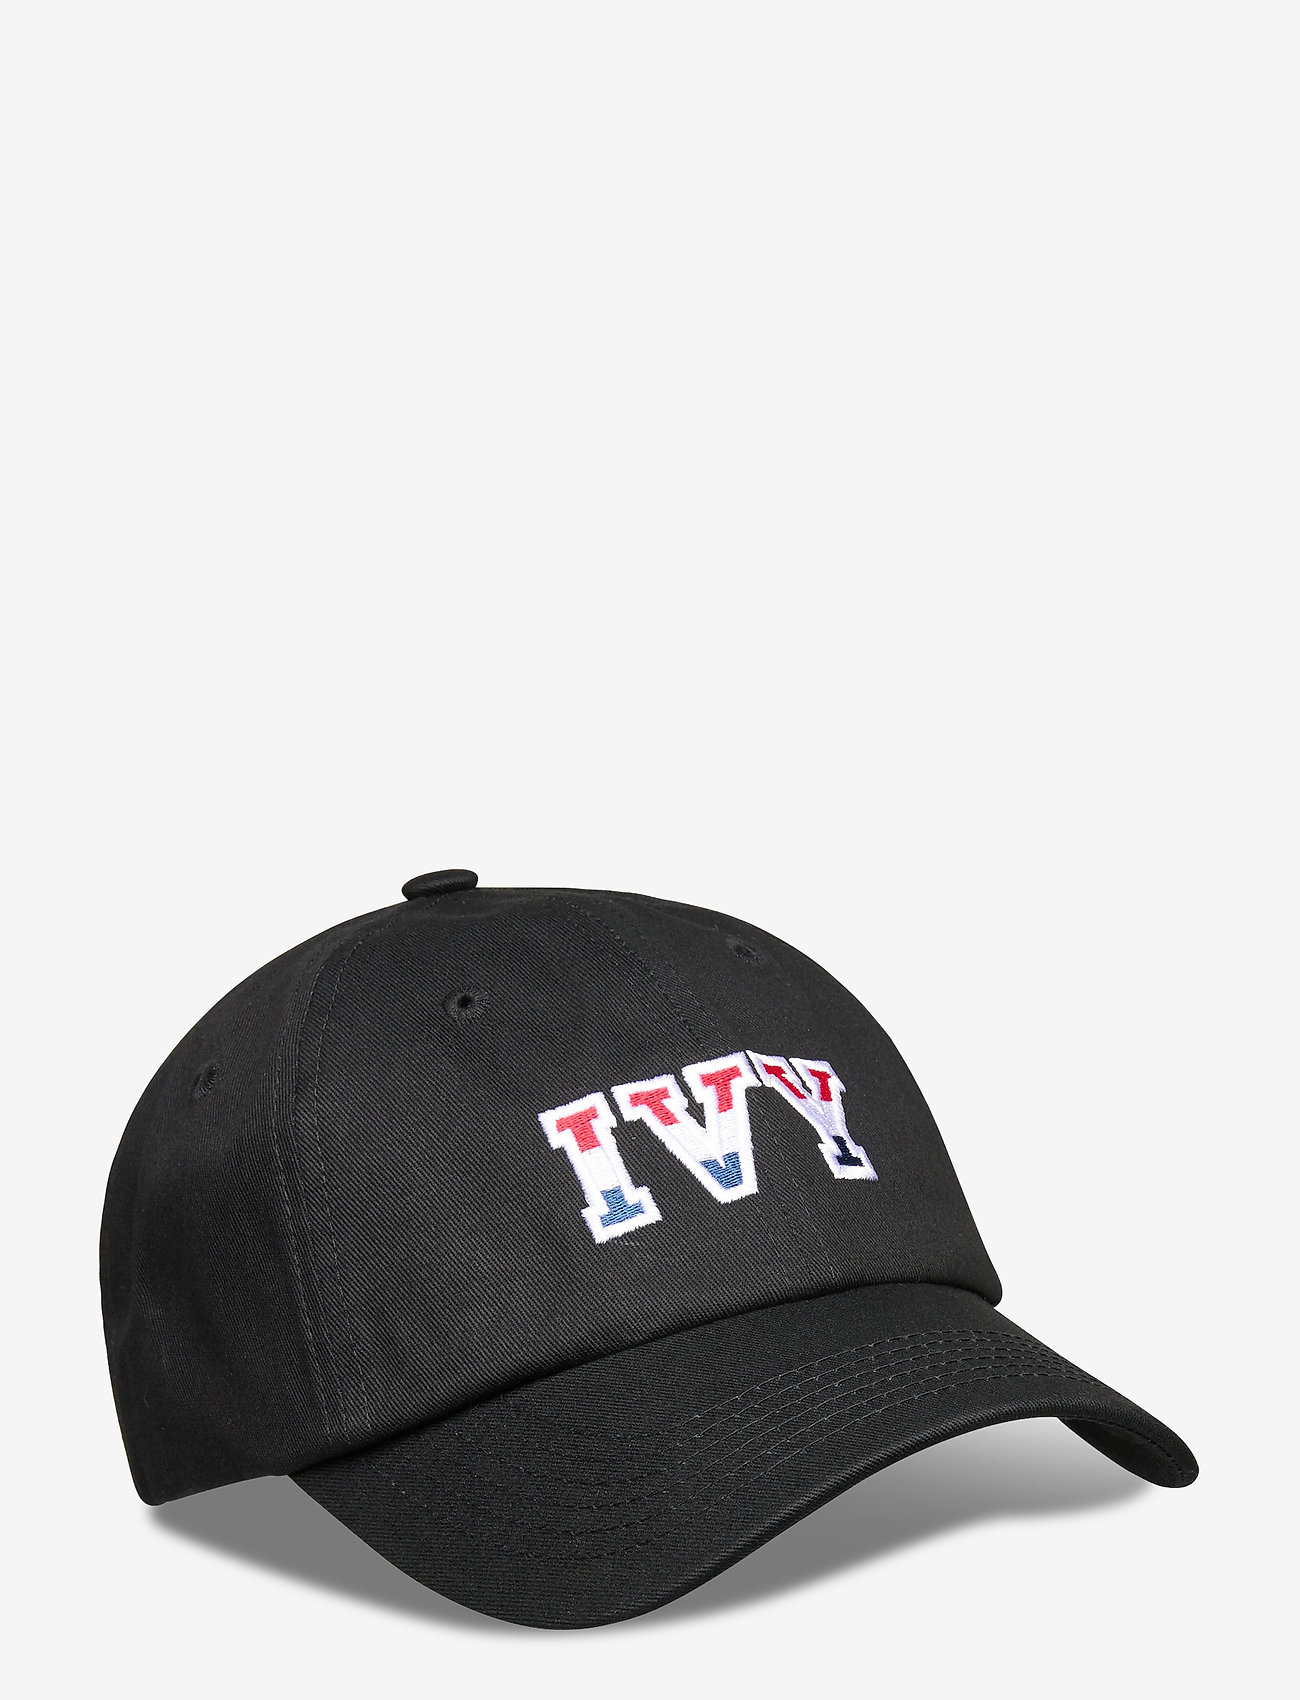 An Ivy - Ivy Black Cap - casquettes - black/white/red/navy - 0